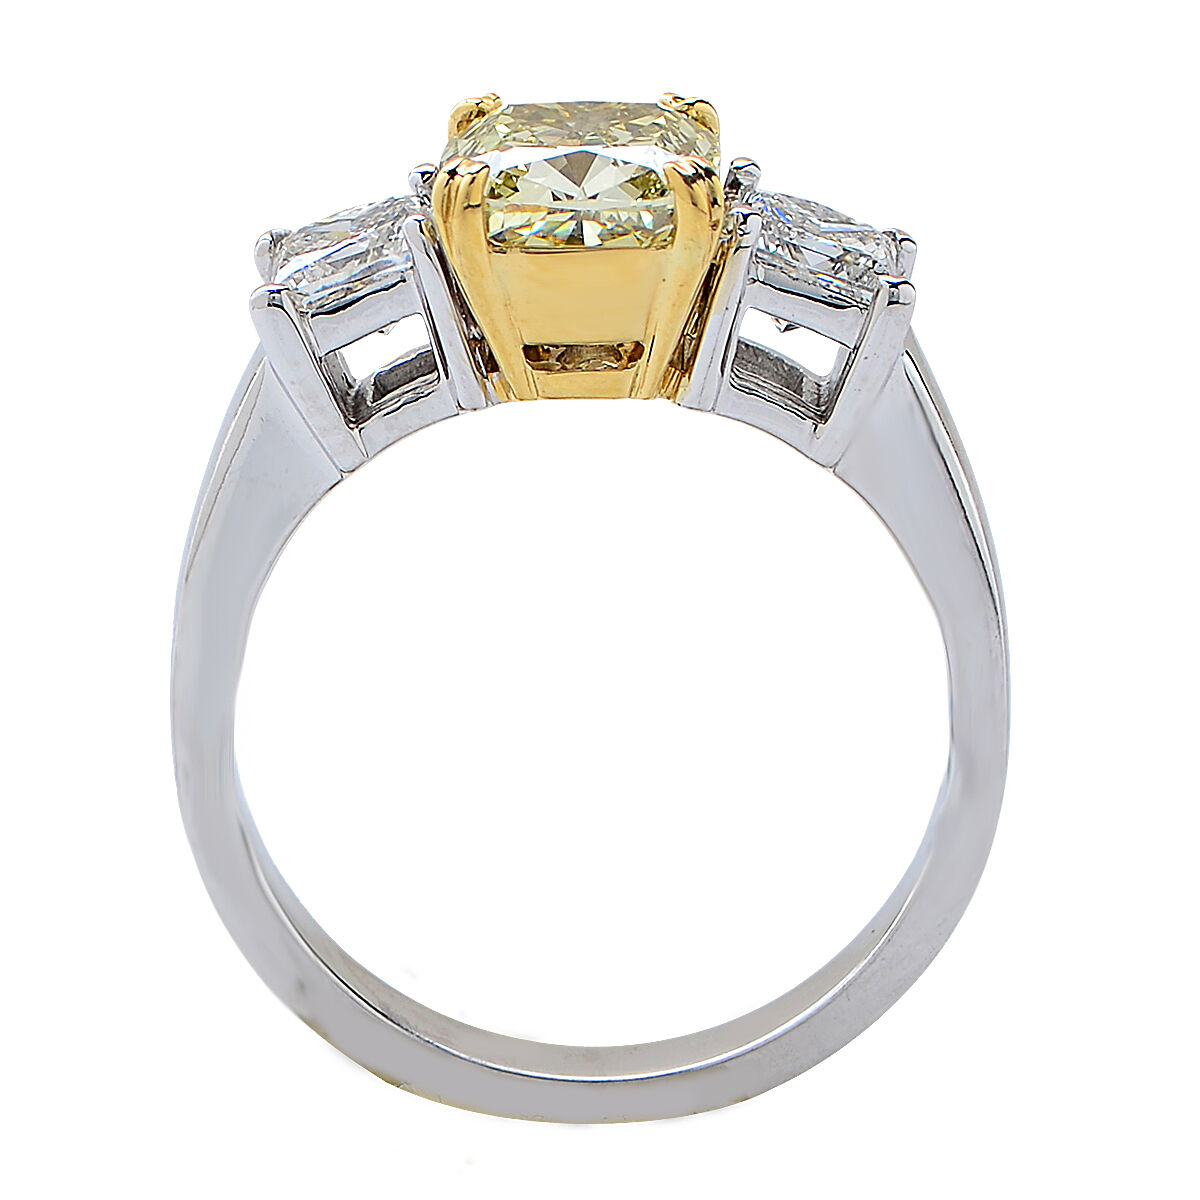 Beautiful GIA Certified Natural Fancy Color Yellow Diamond Engagement Ring 2